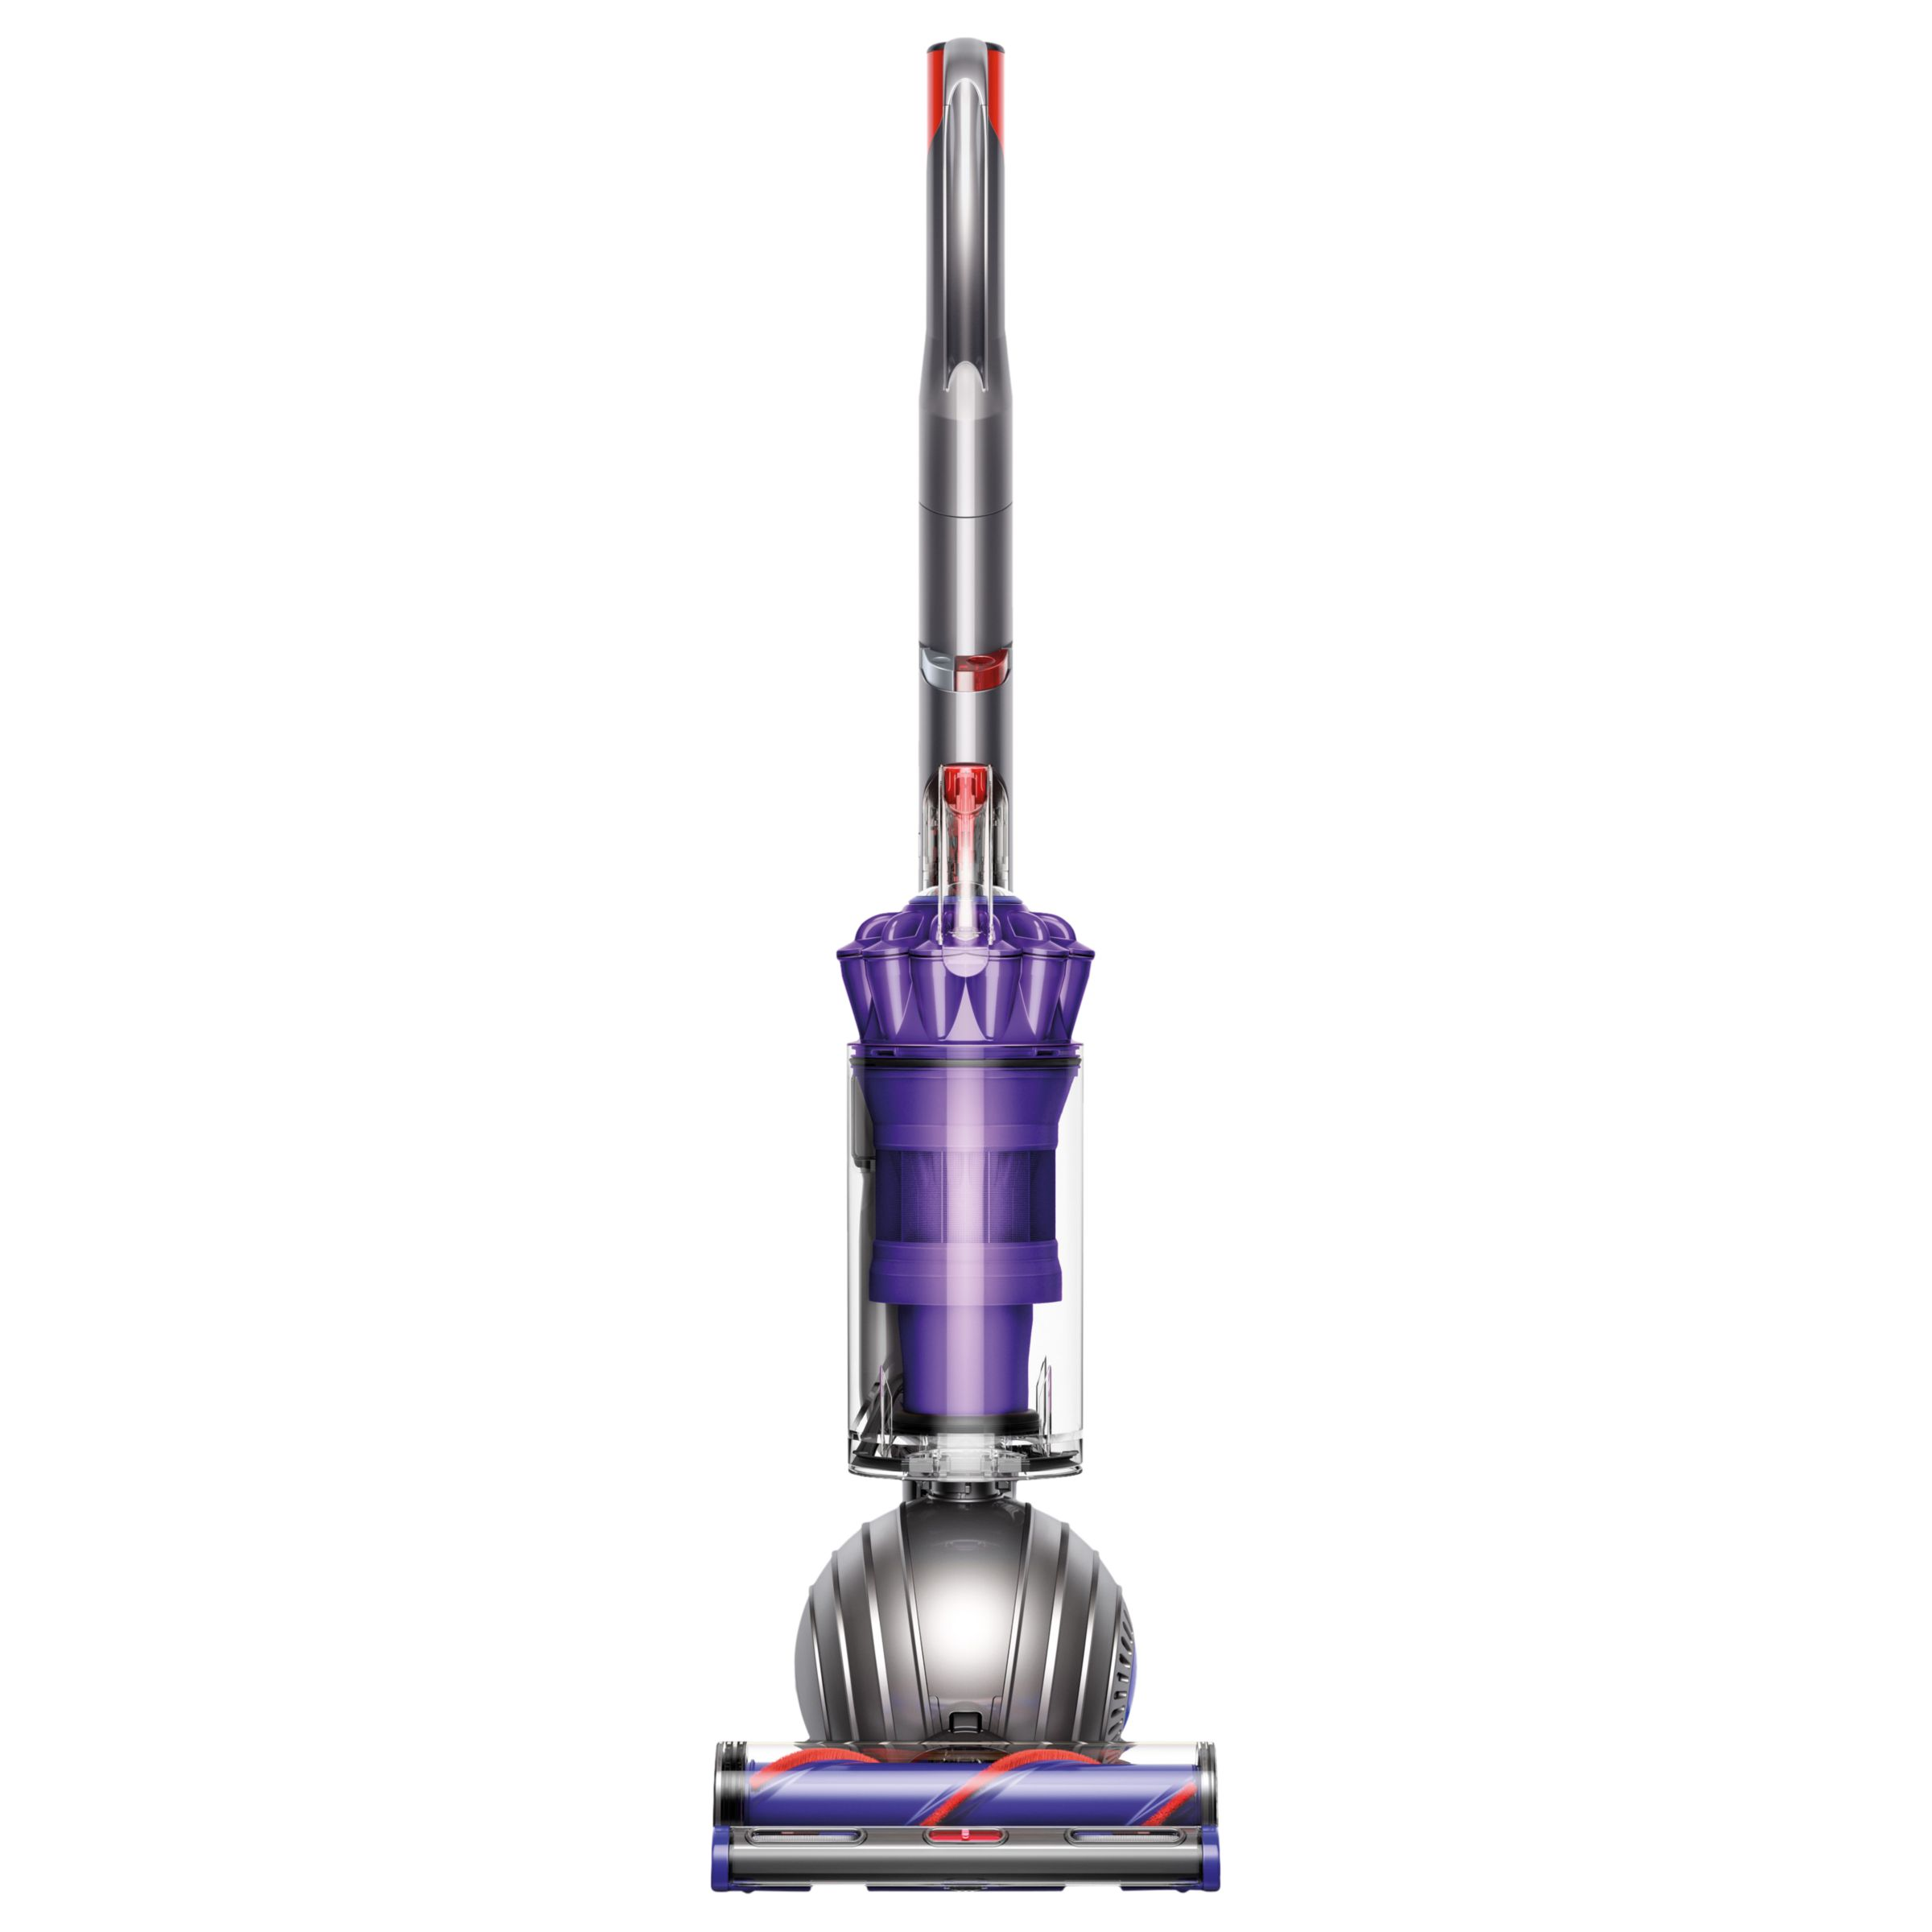 rakuten here shop best floor high ball dyson multi inc and find value direct products